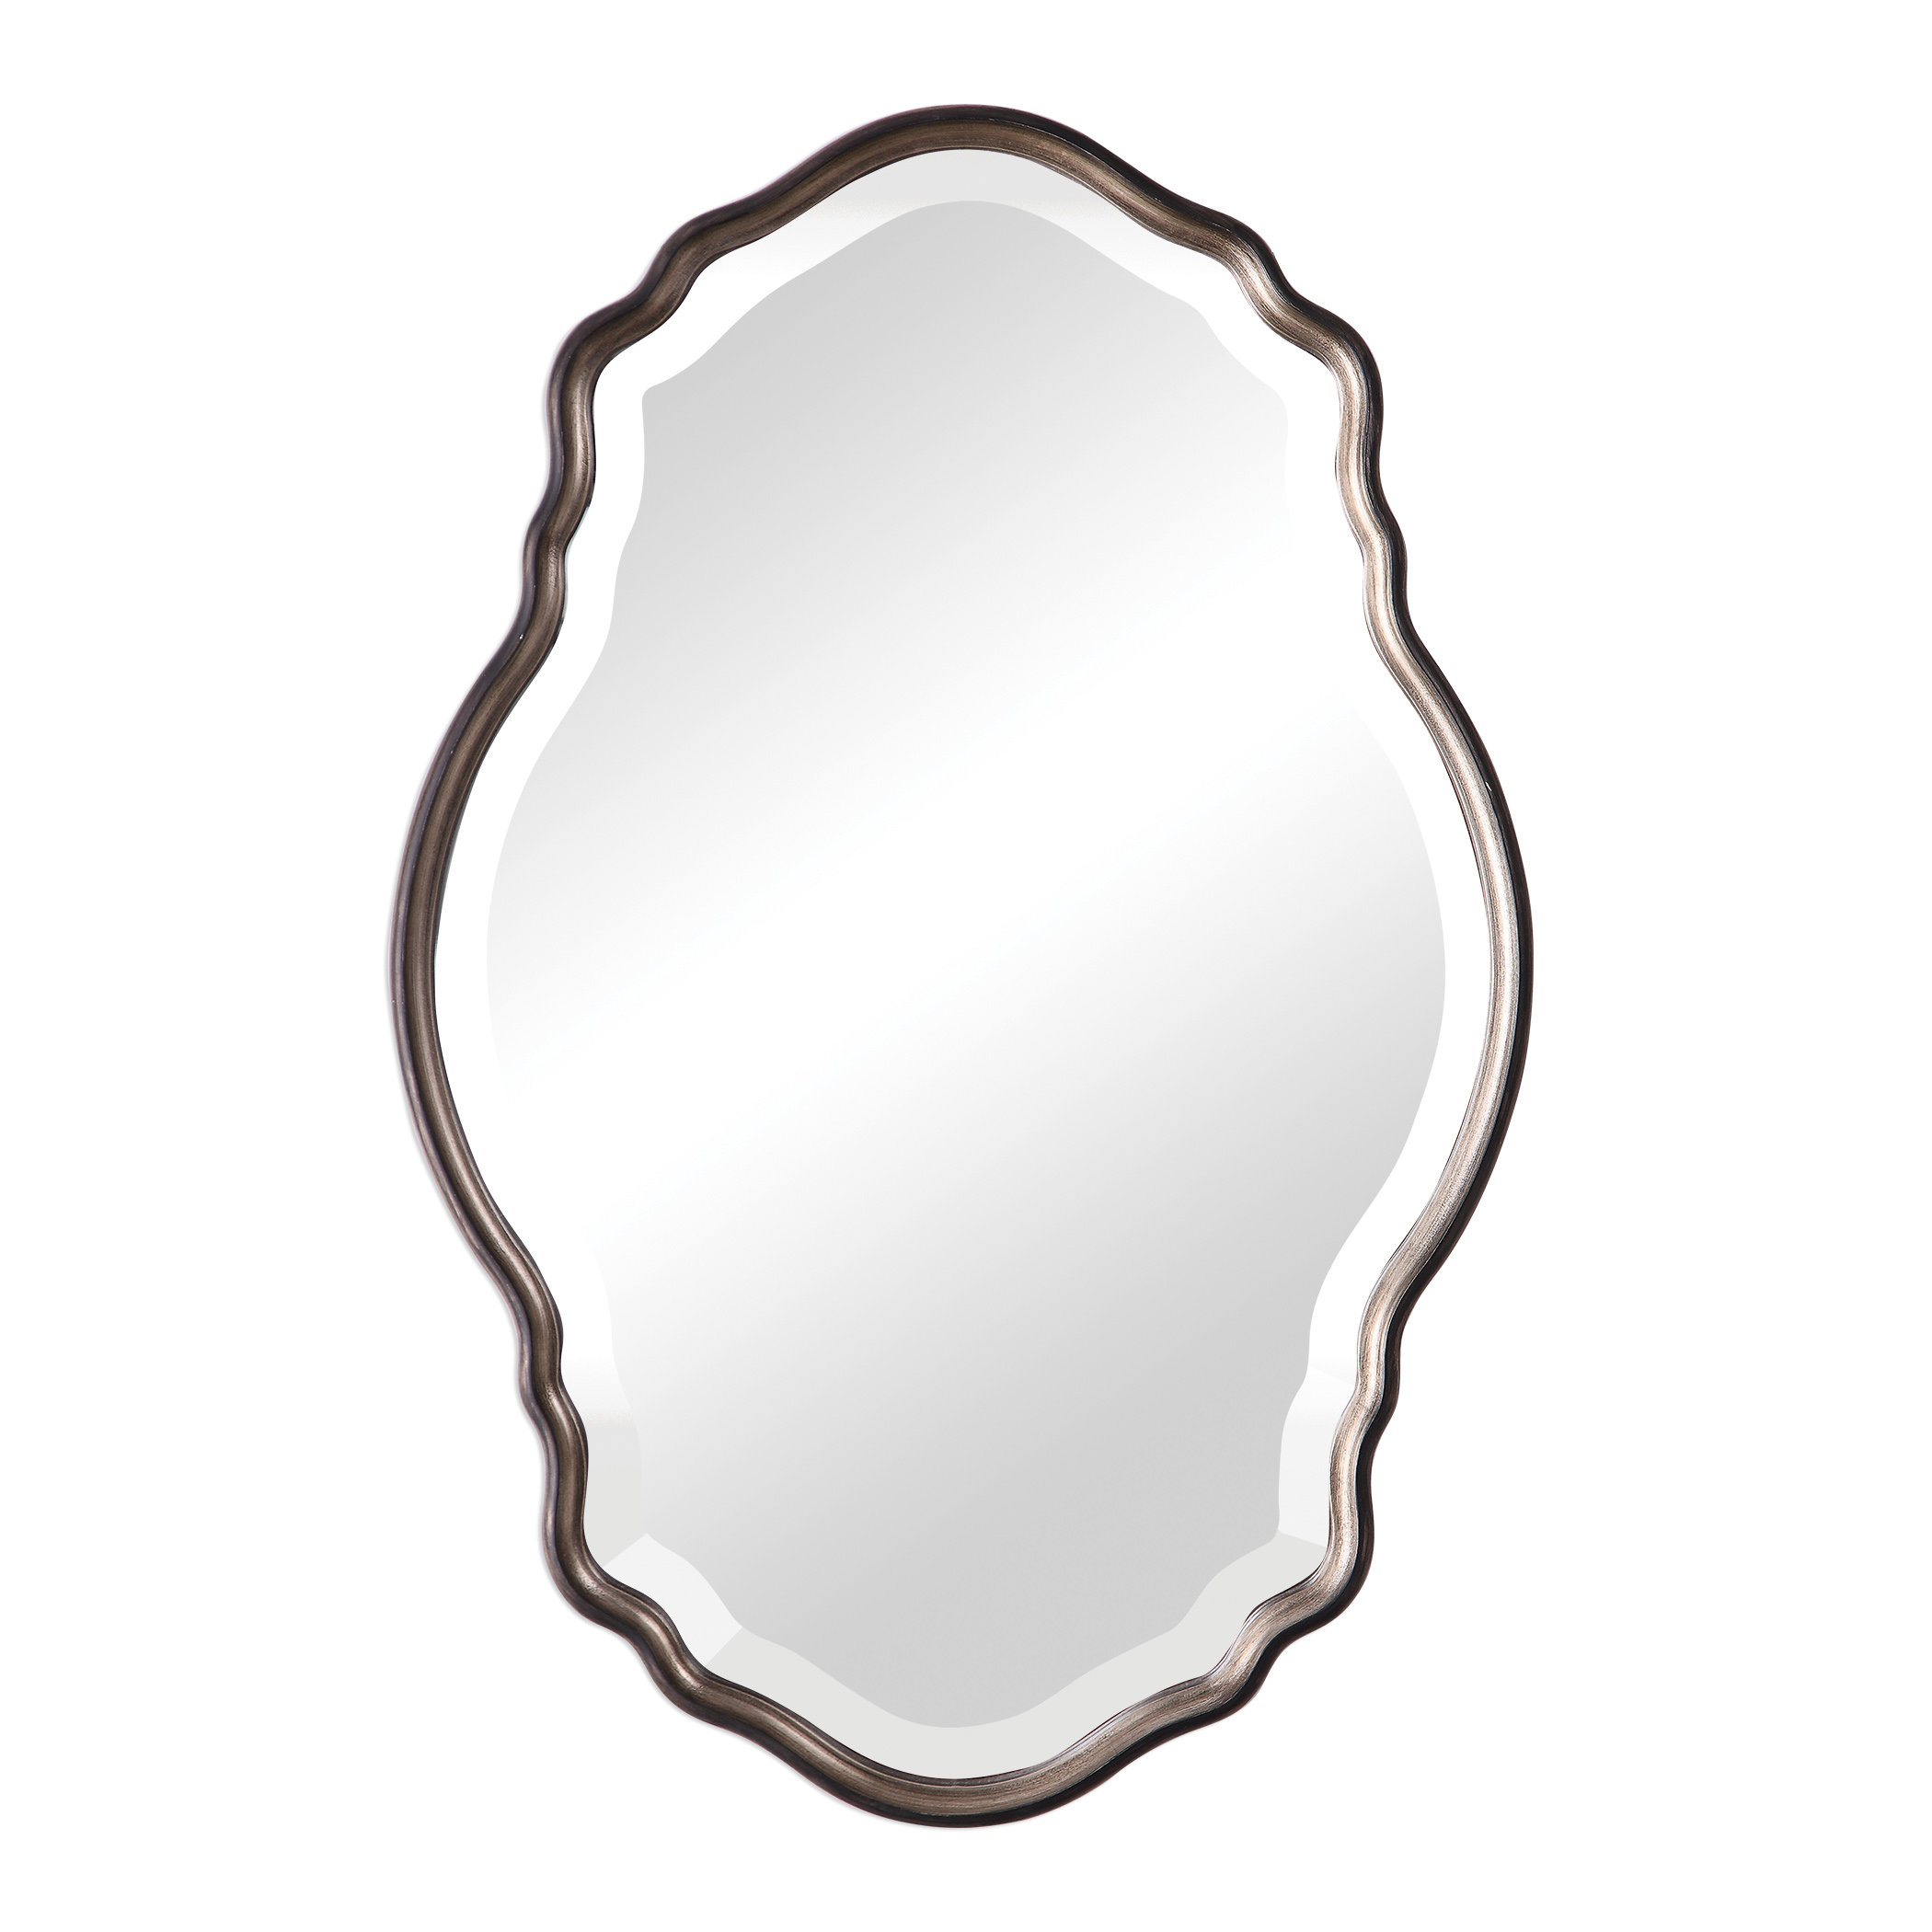 Christner Modern & Contemporary Beveled Wall Mirror Pertaining To Guidinha Modern & Contemporary Accent Mirrors (View 5 of 30)